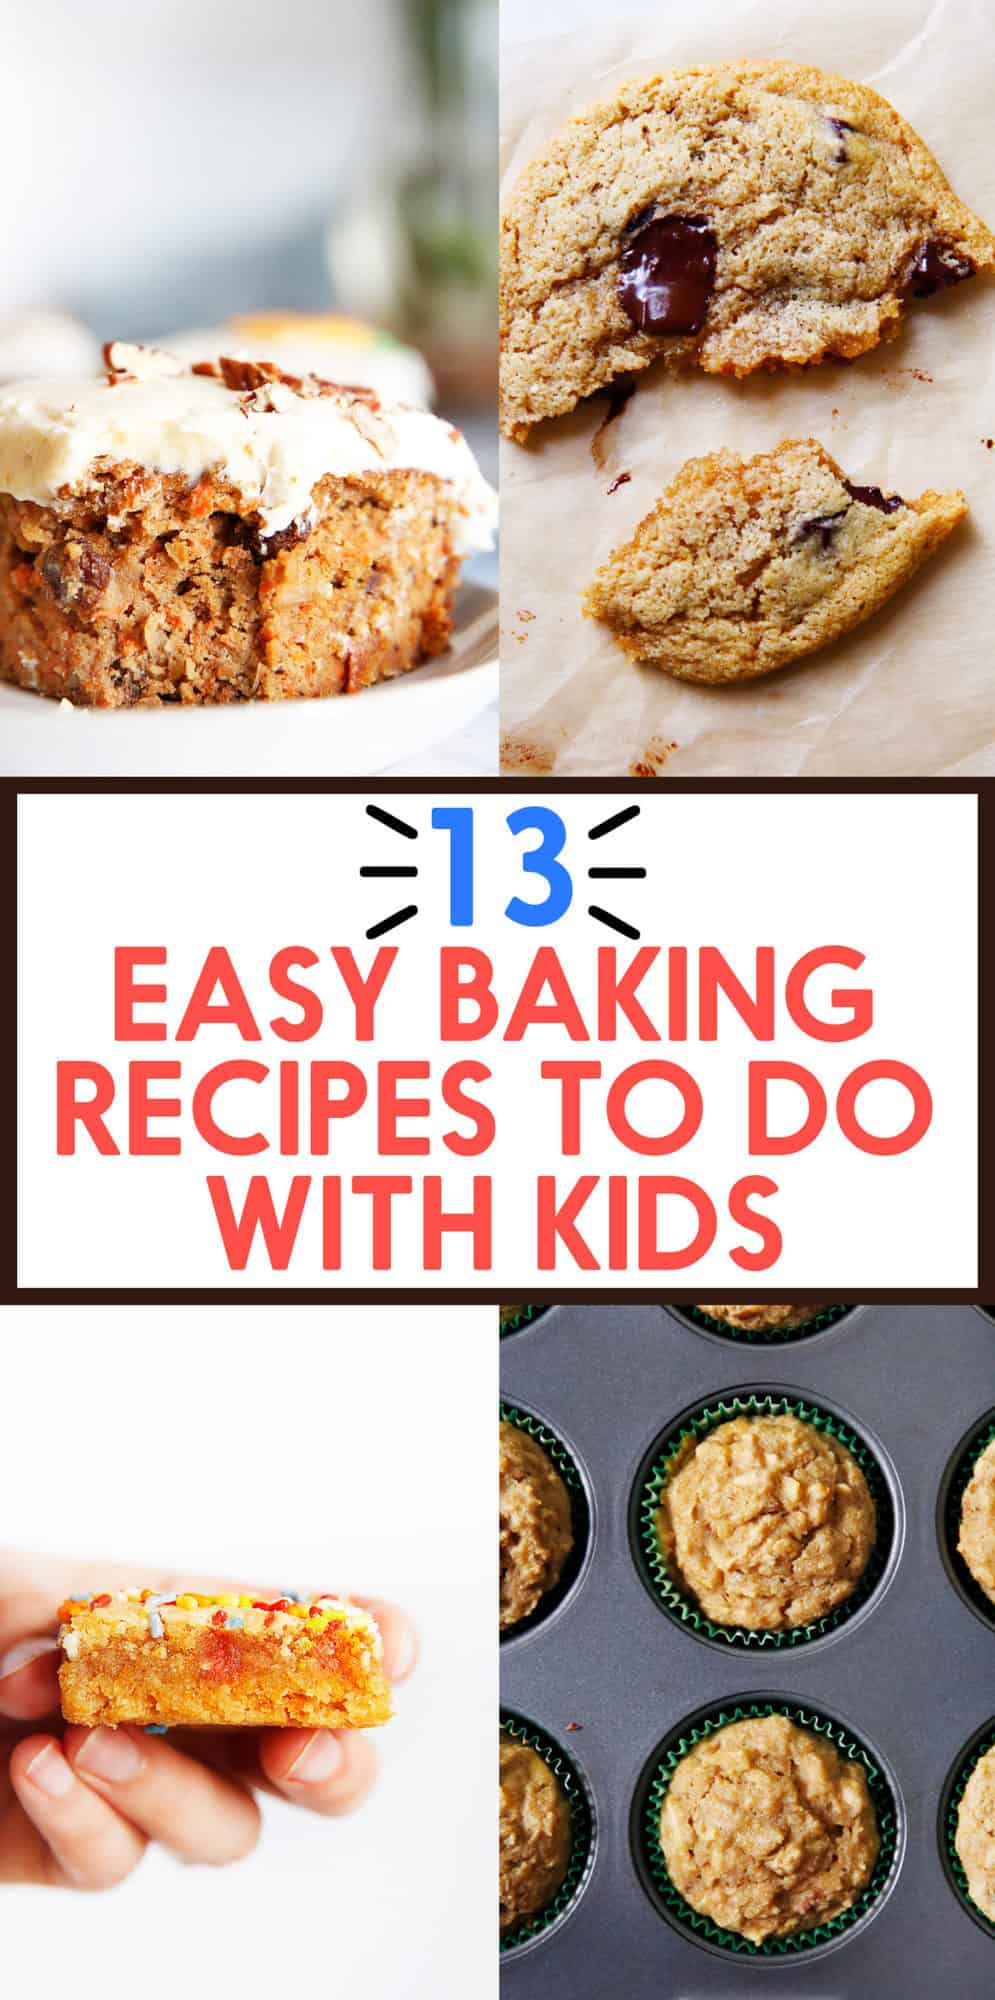 Easy Baking Recipes for kids.